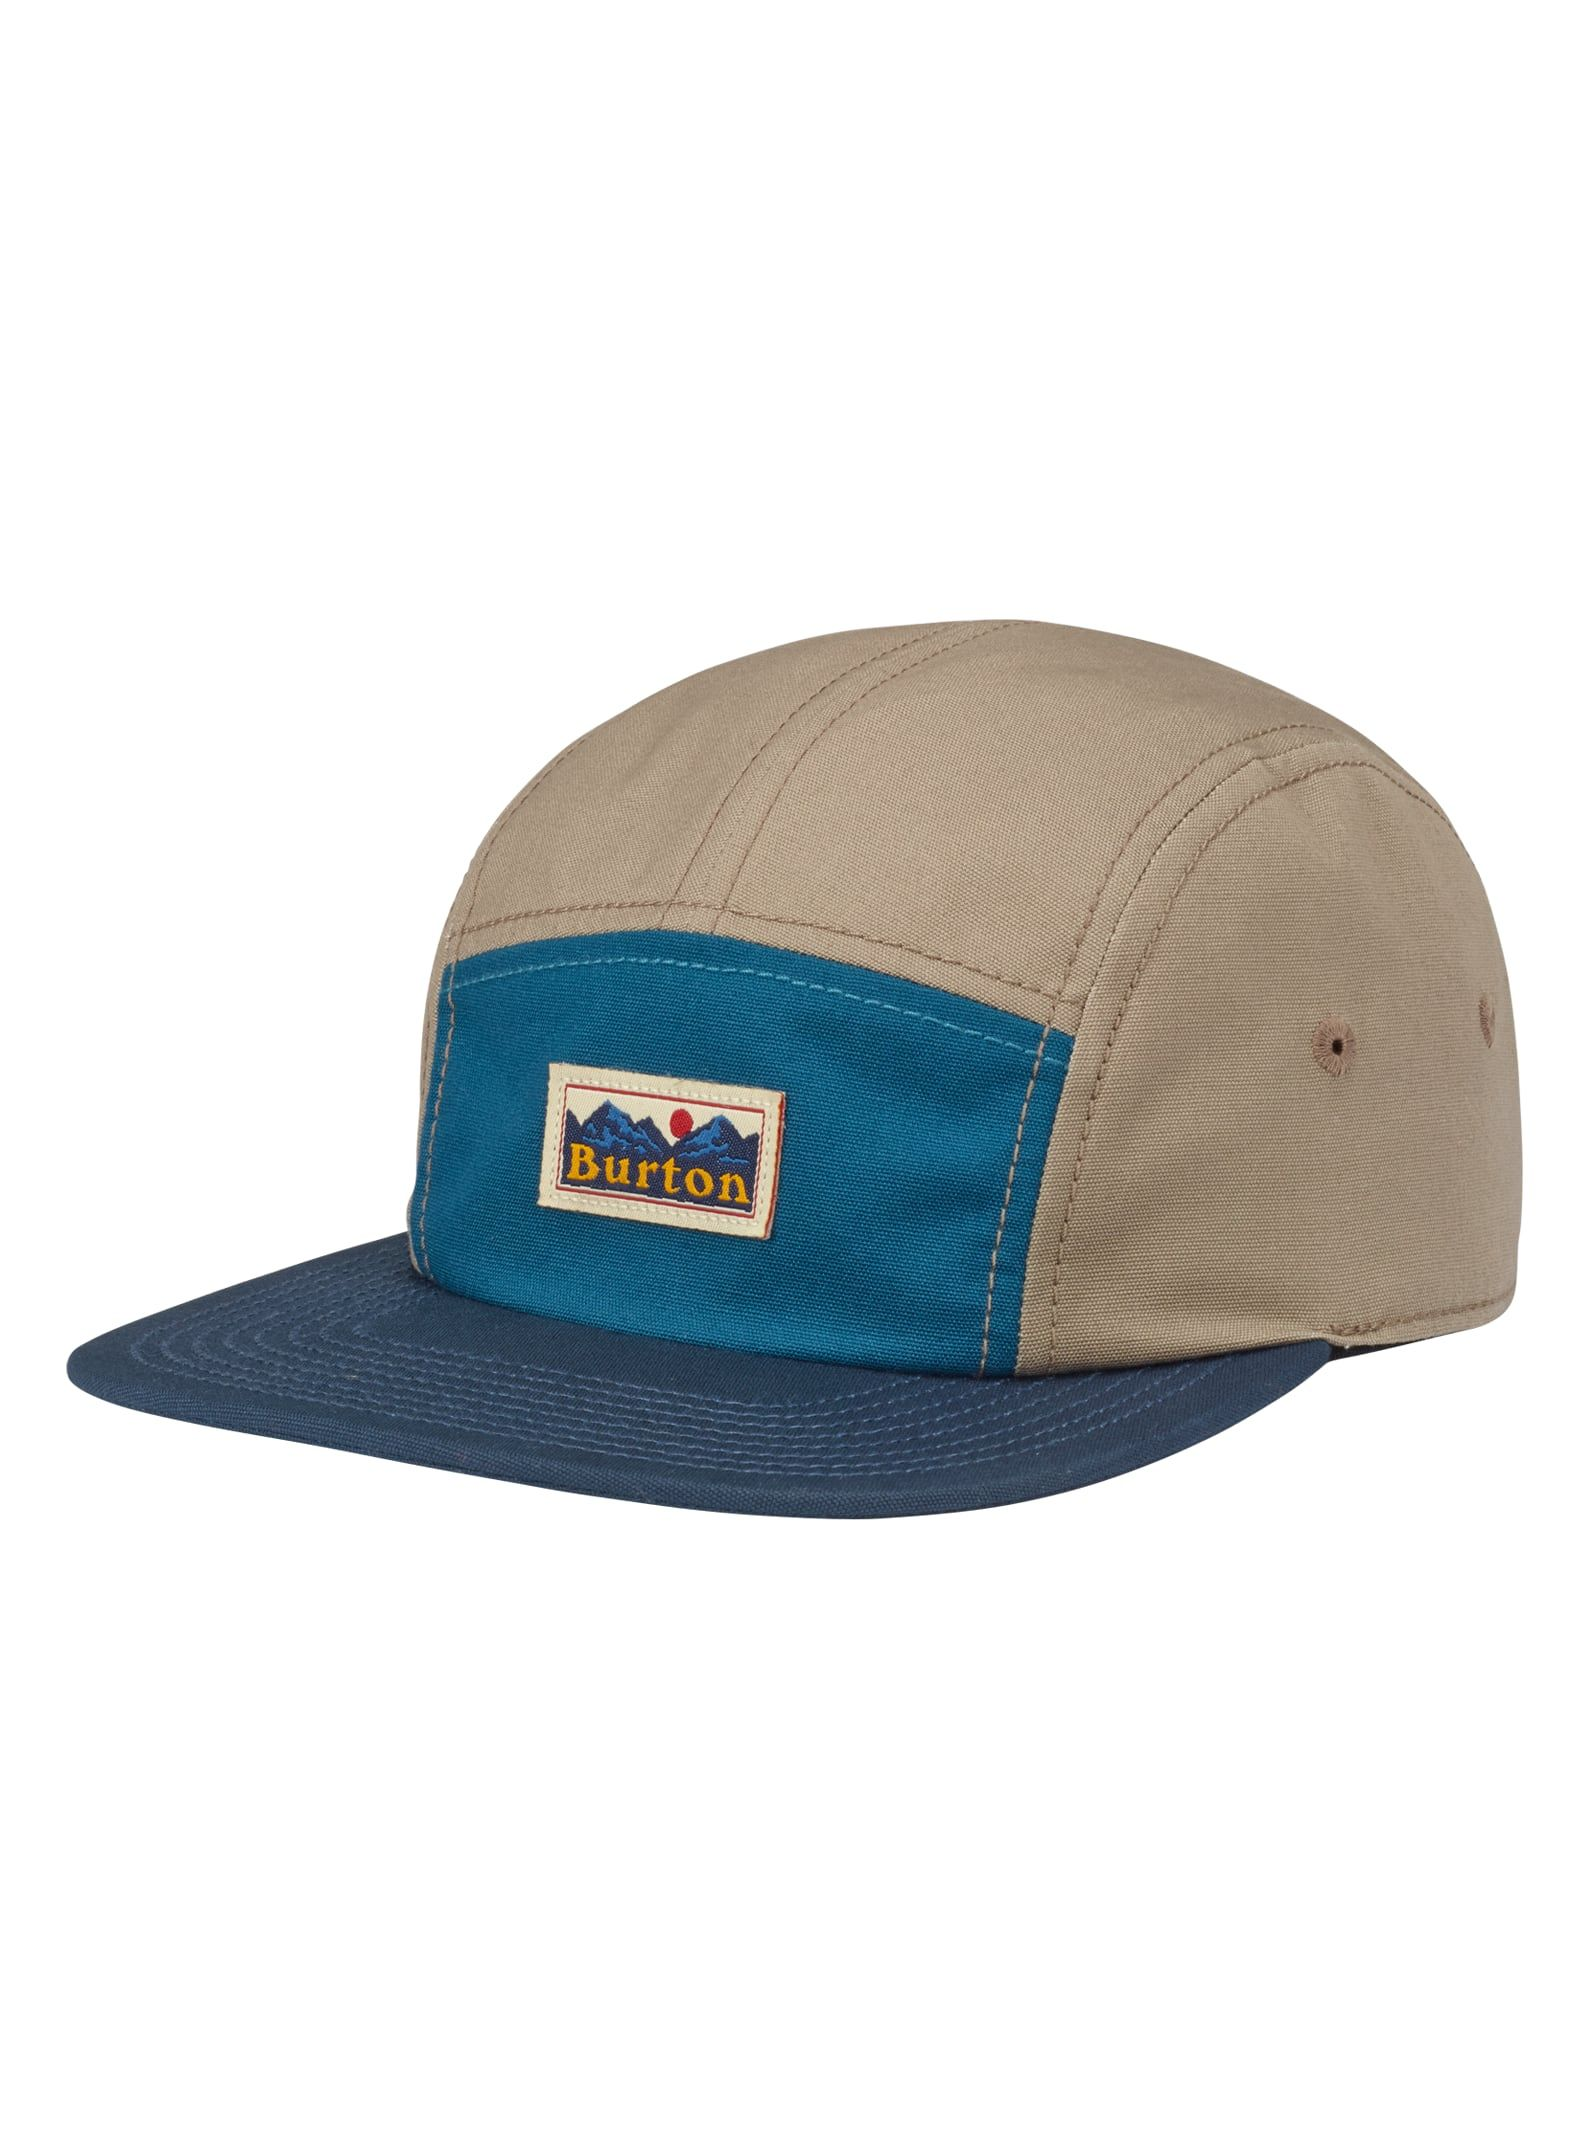 43804fc3f95 Burton Cordova 5-Panel Camp Hat in 2019